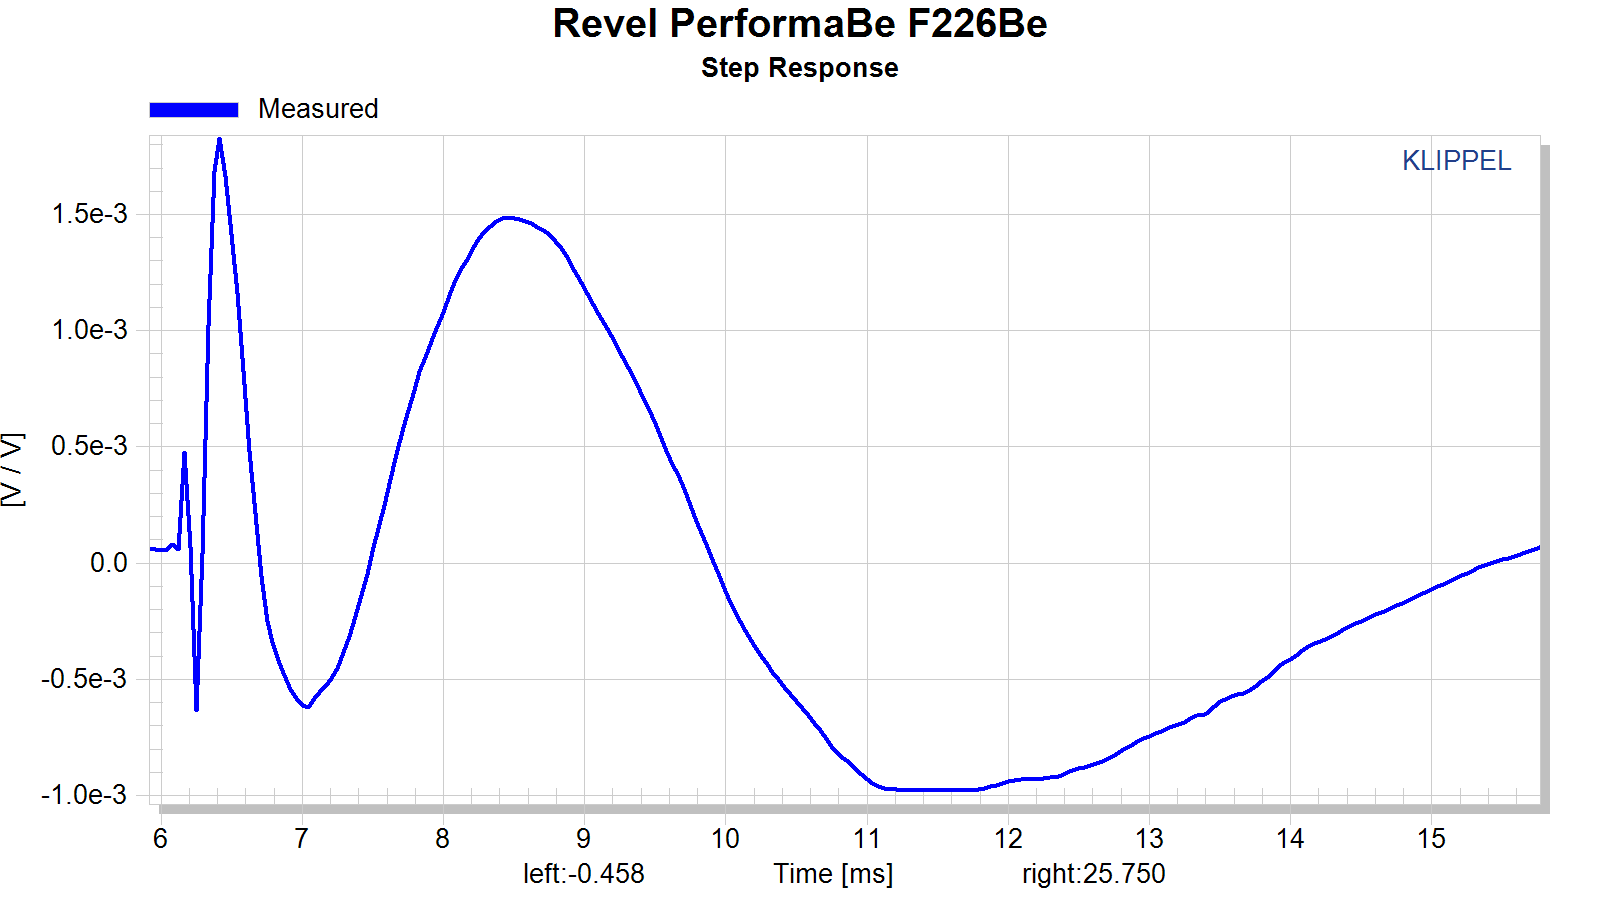 Revel%20PerformaBe%20F226Be%20step%20response.png